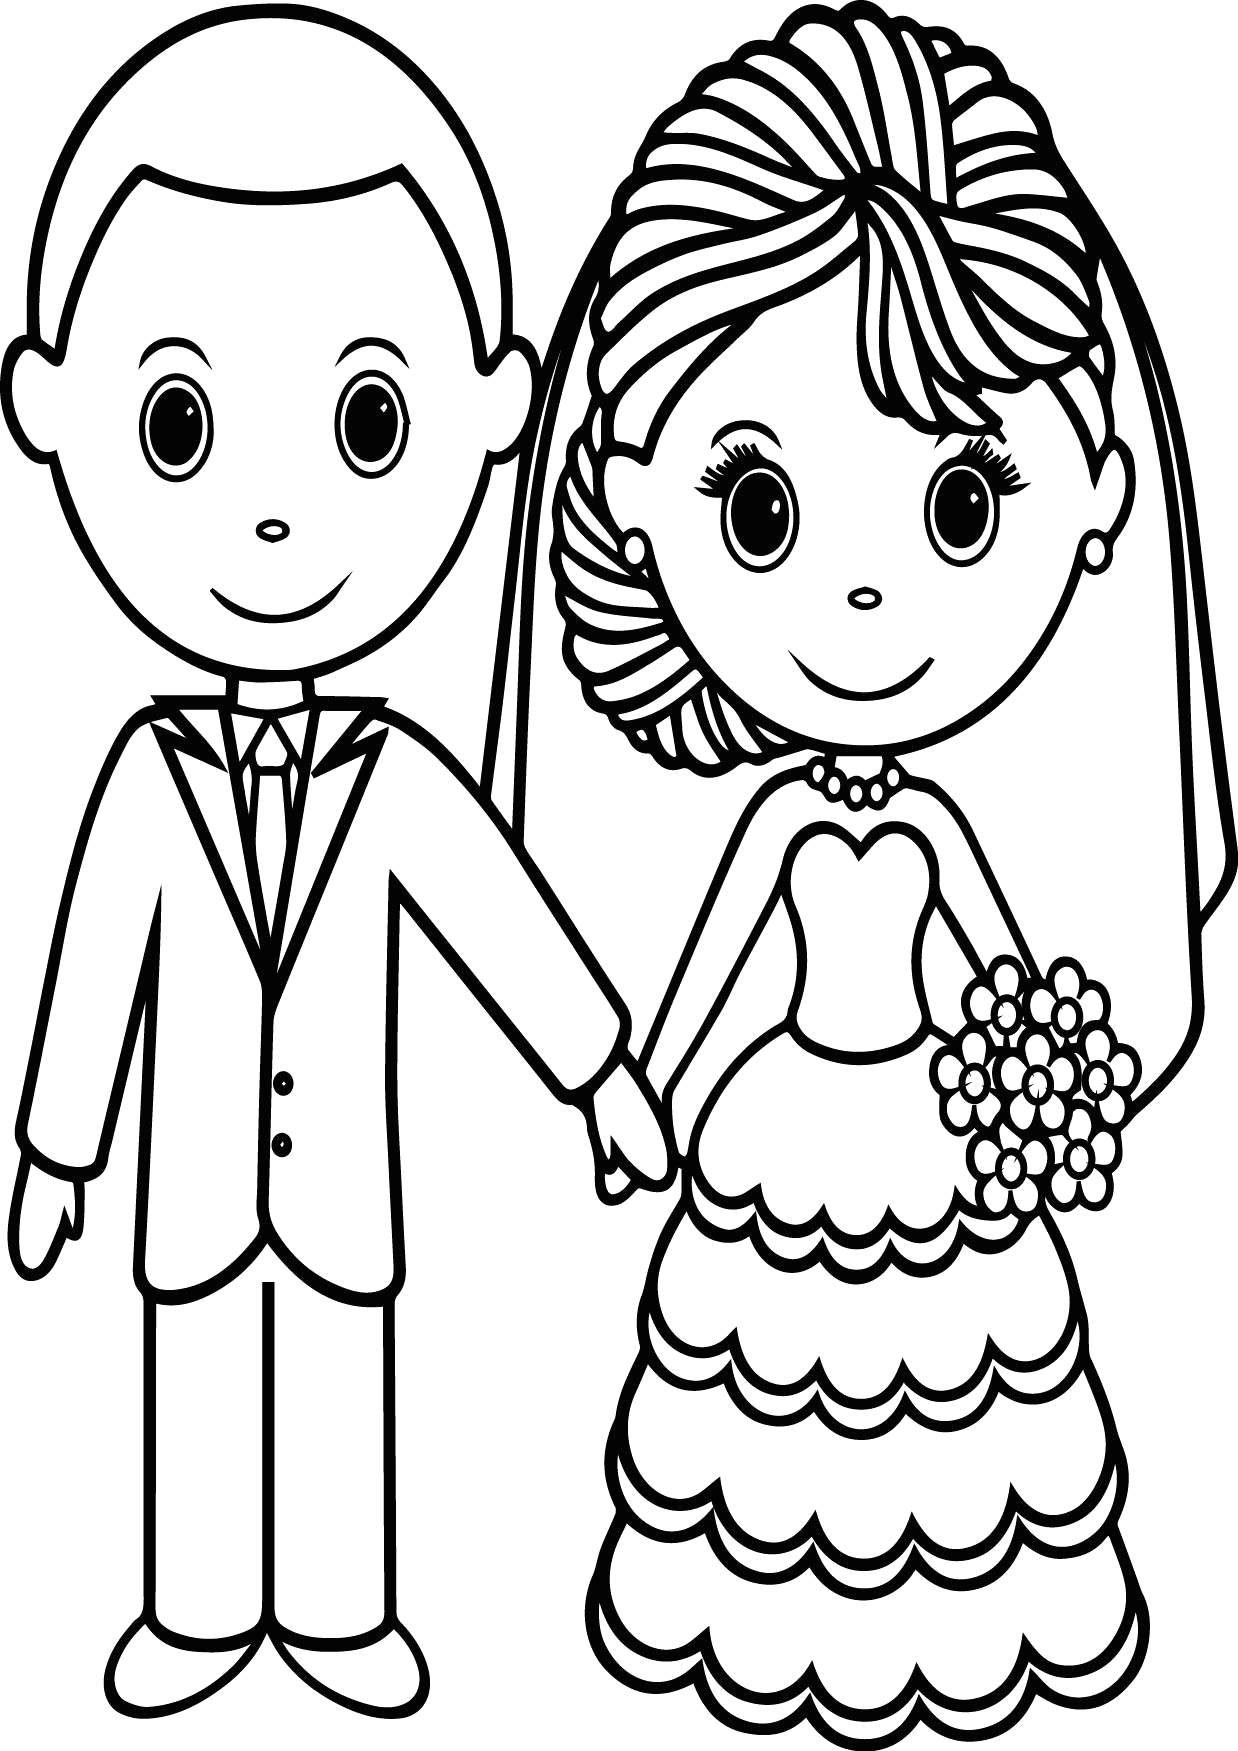 Free Printable Bride and Groom Coloring Pages Bride Groom Coloring Page at Getcolorings